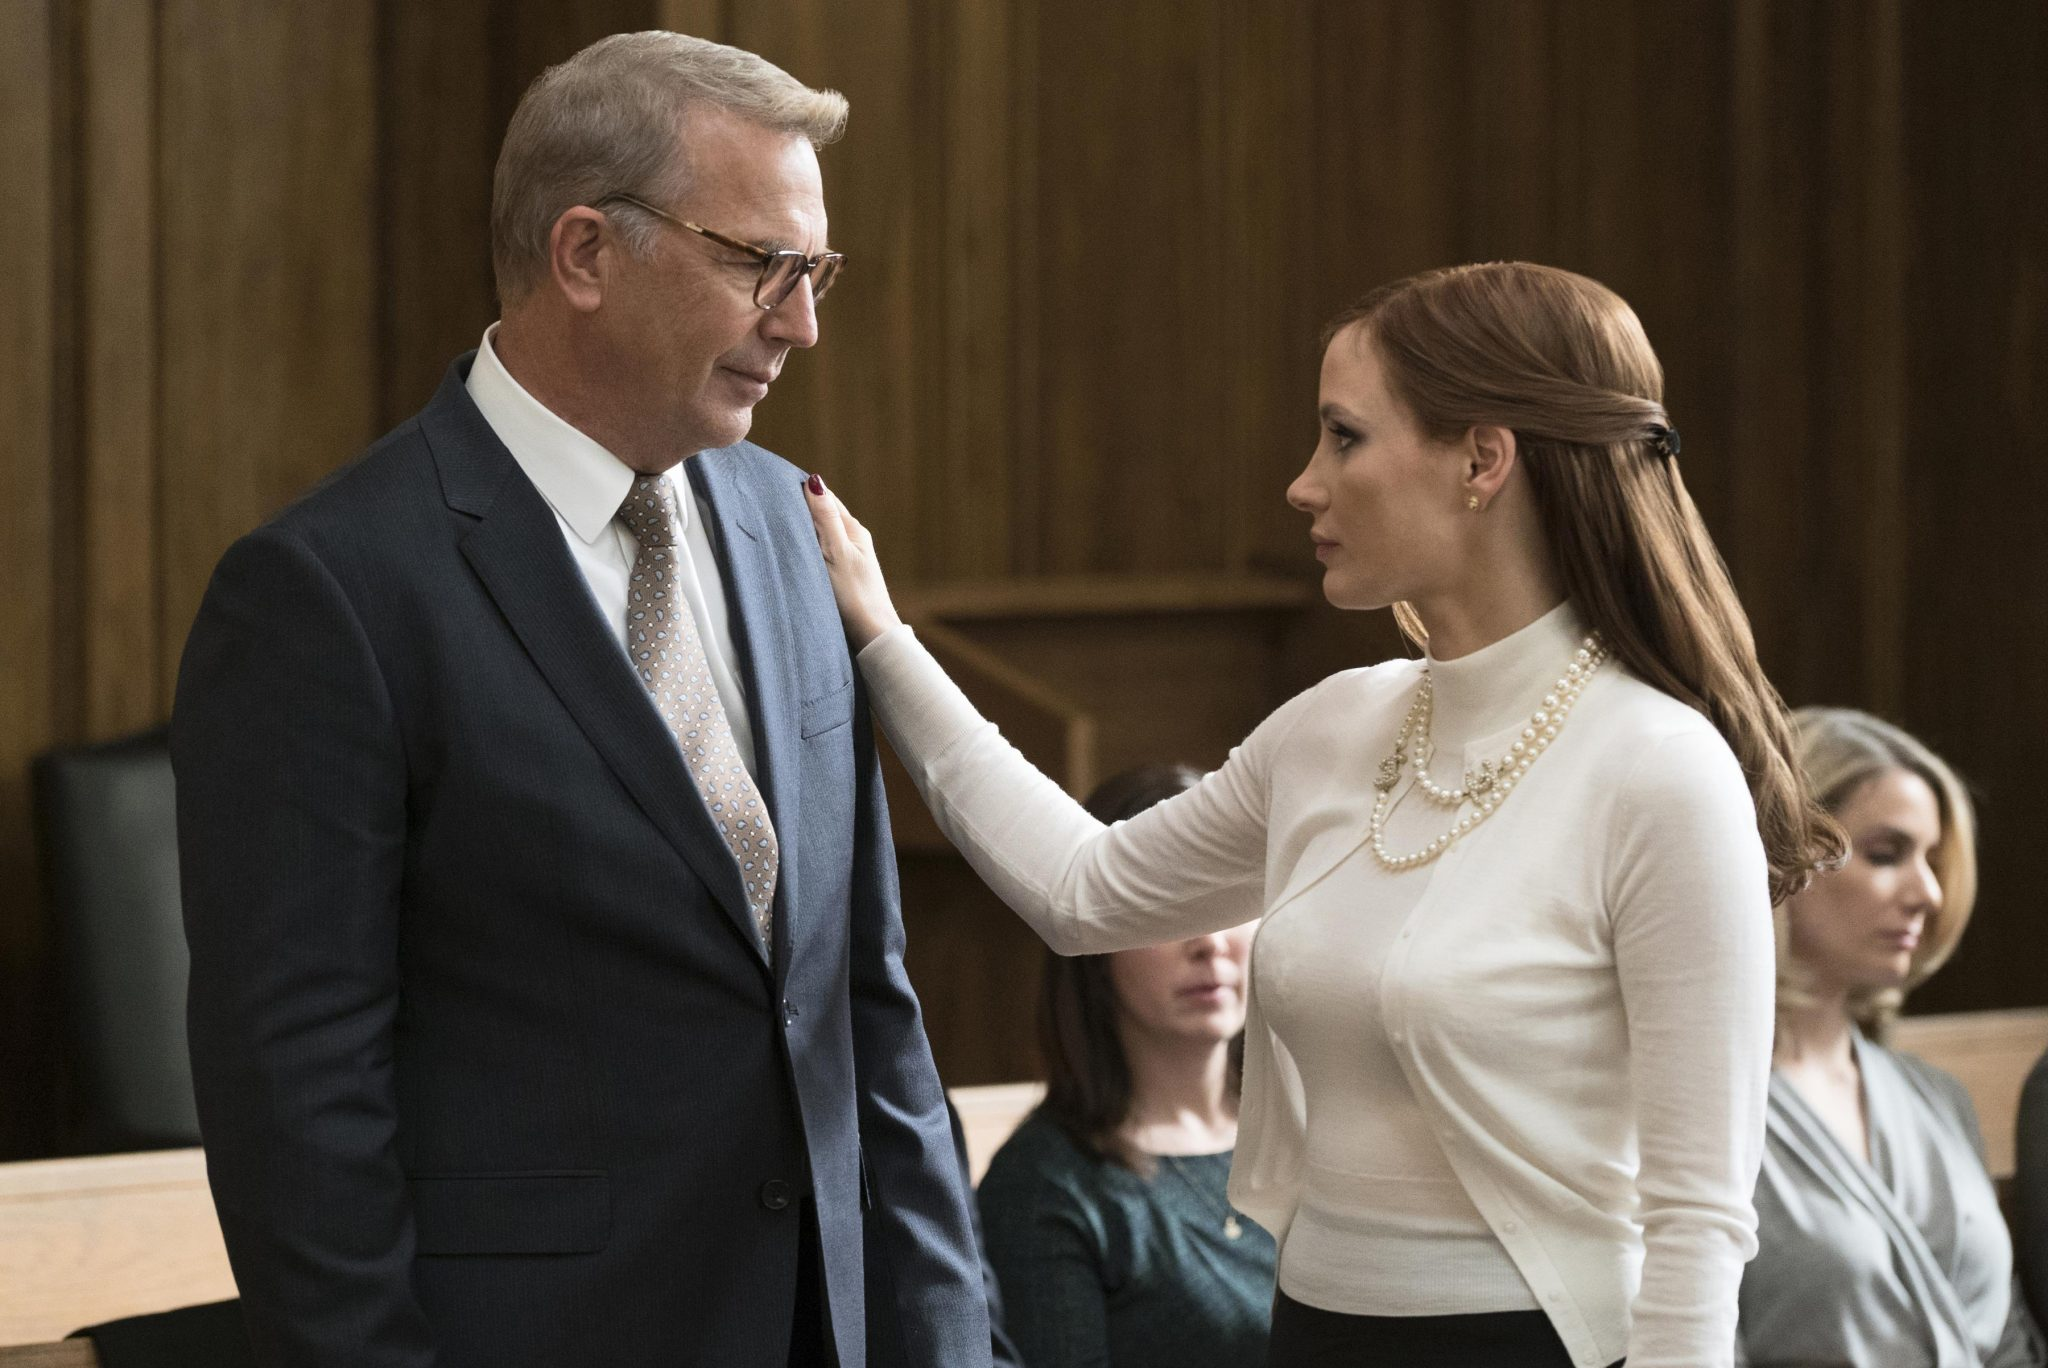 LE GRAND JEU - Photo Film Jessica Chastain Kevin Costner